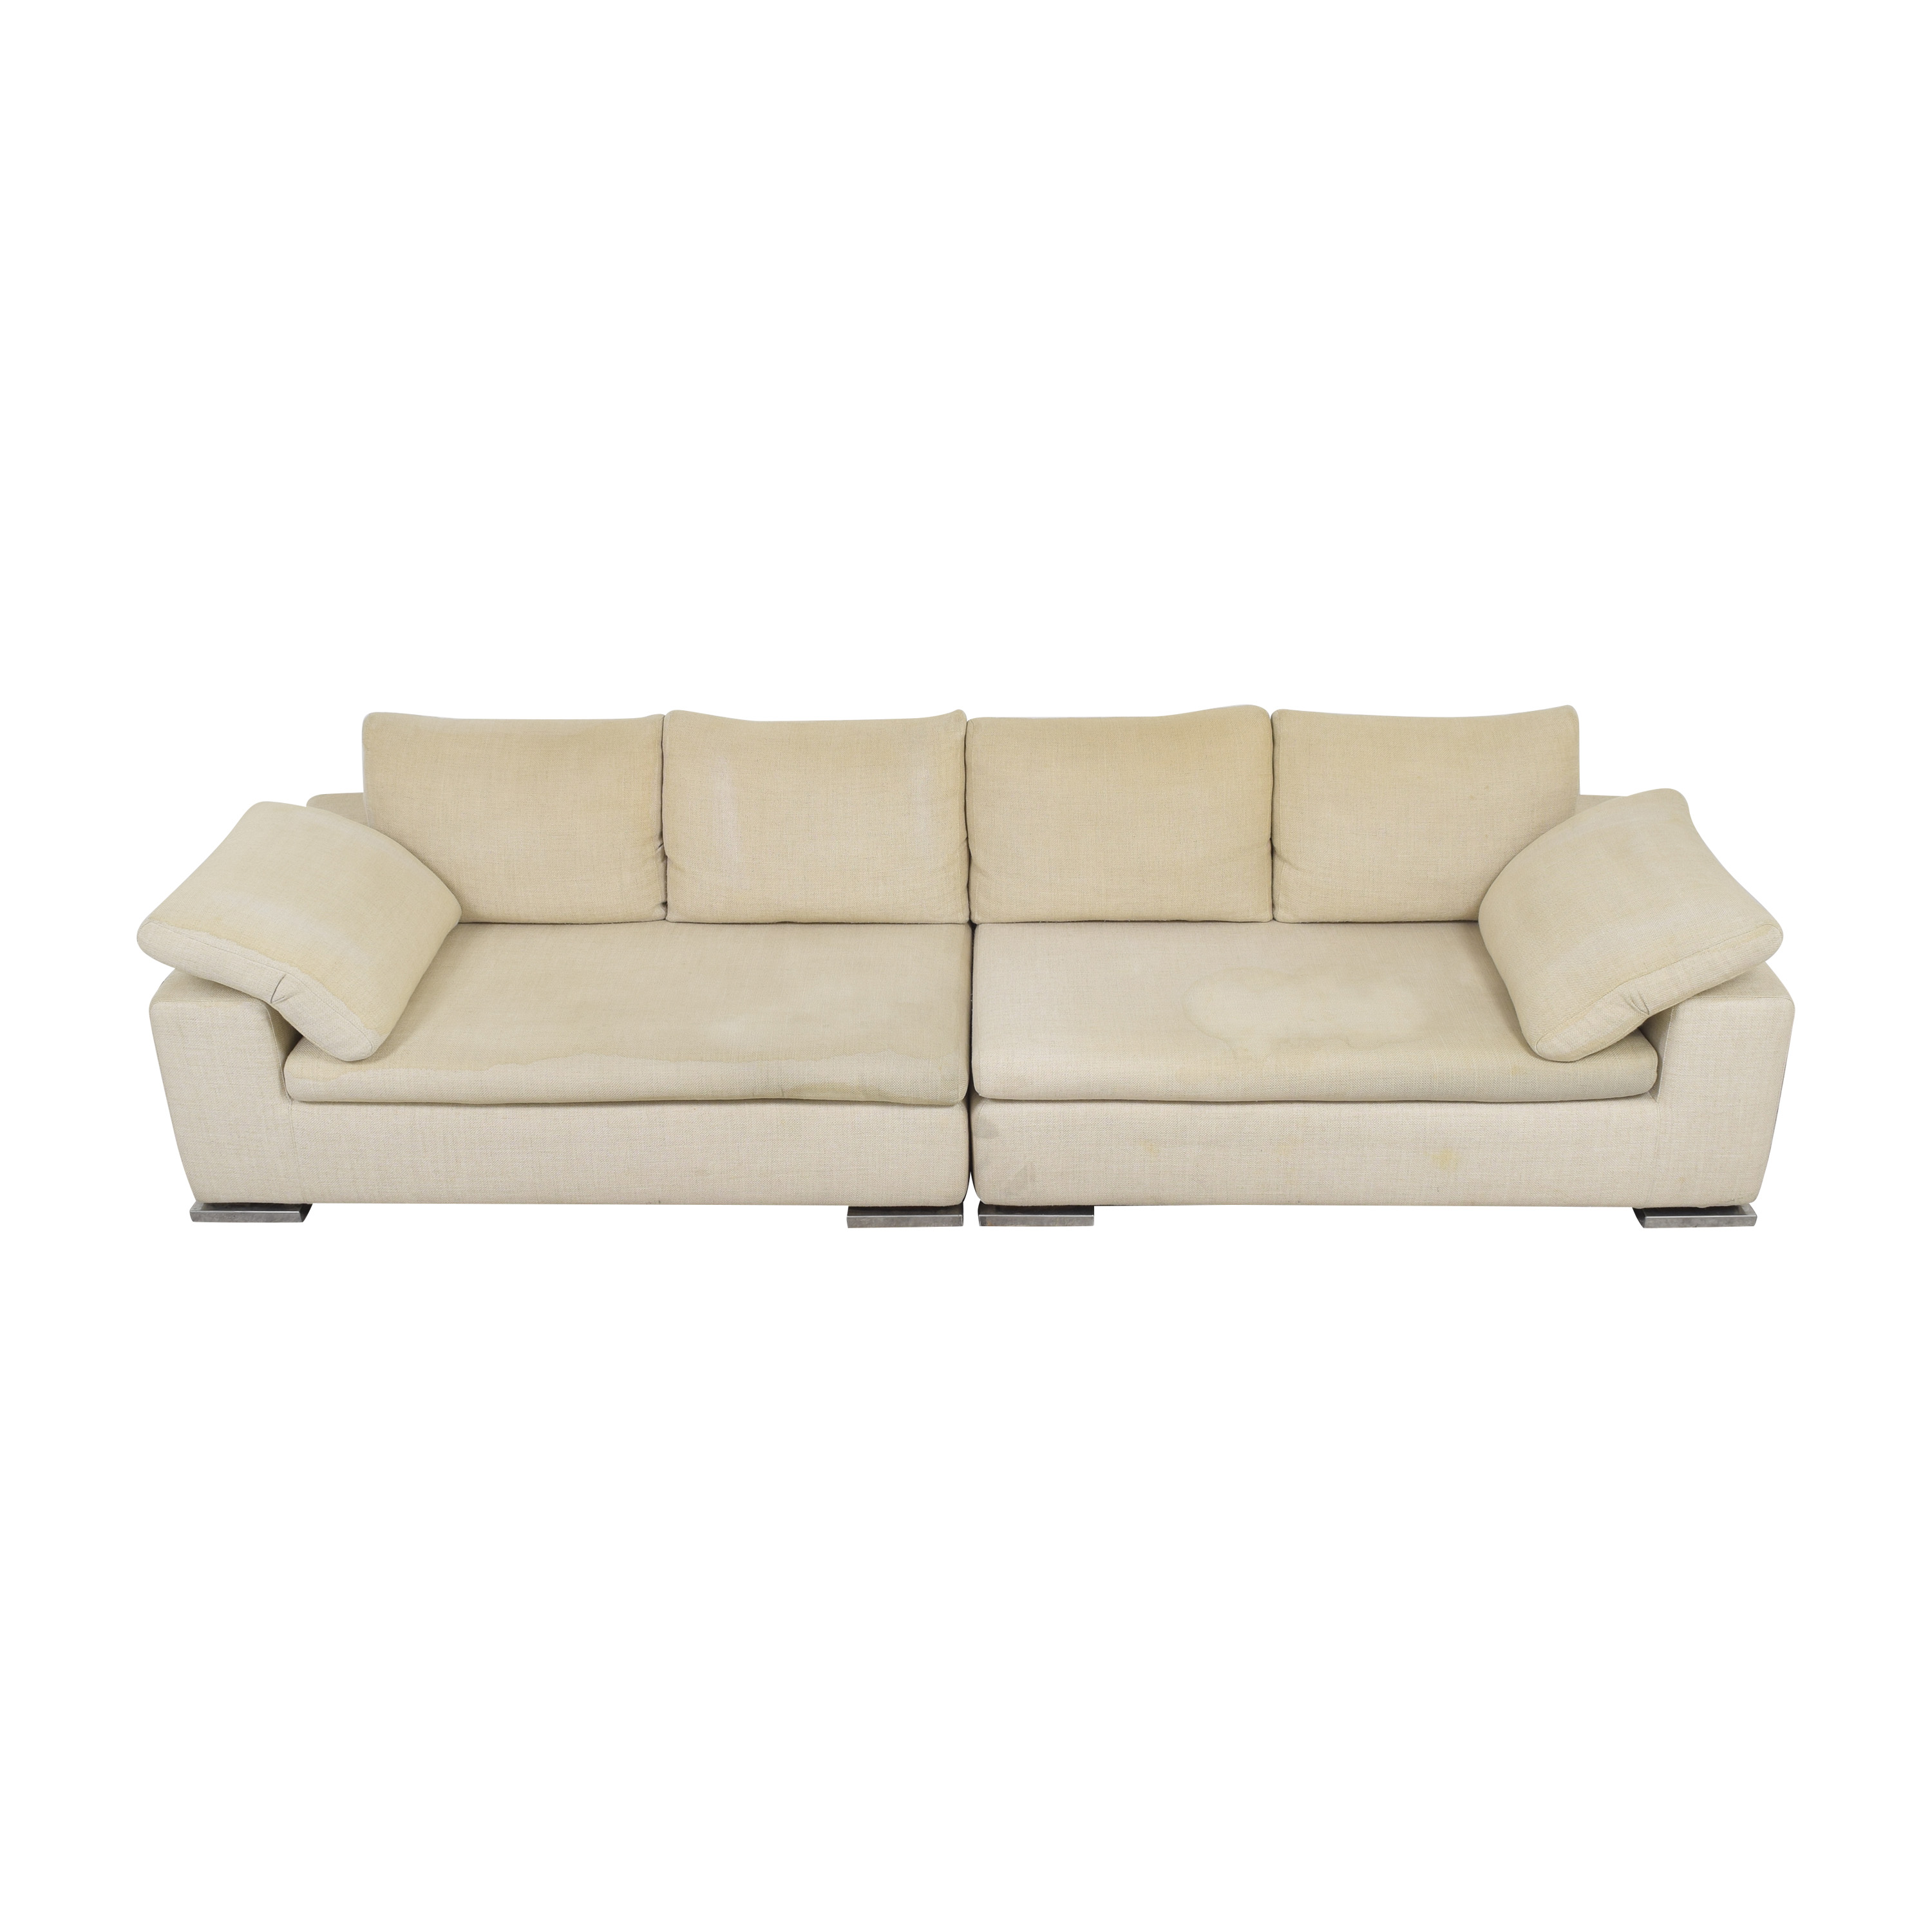 buy  Symmetrical Two Piece Sectional Sofa online